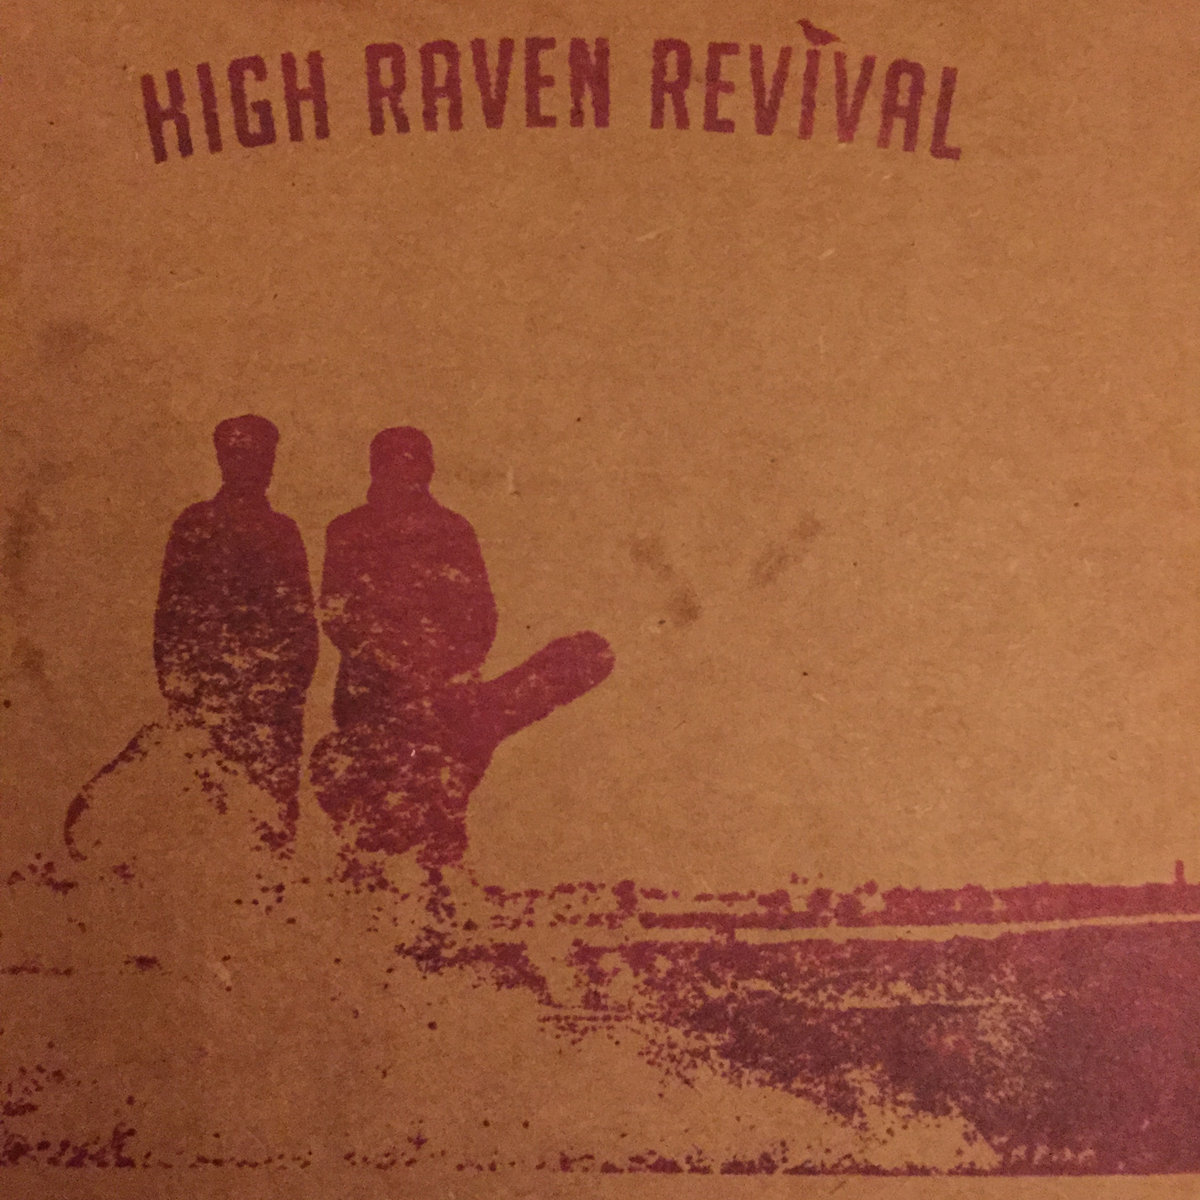 Swing Low Sweet Chariot High Raven Revival